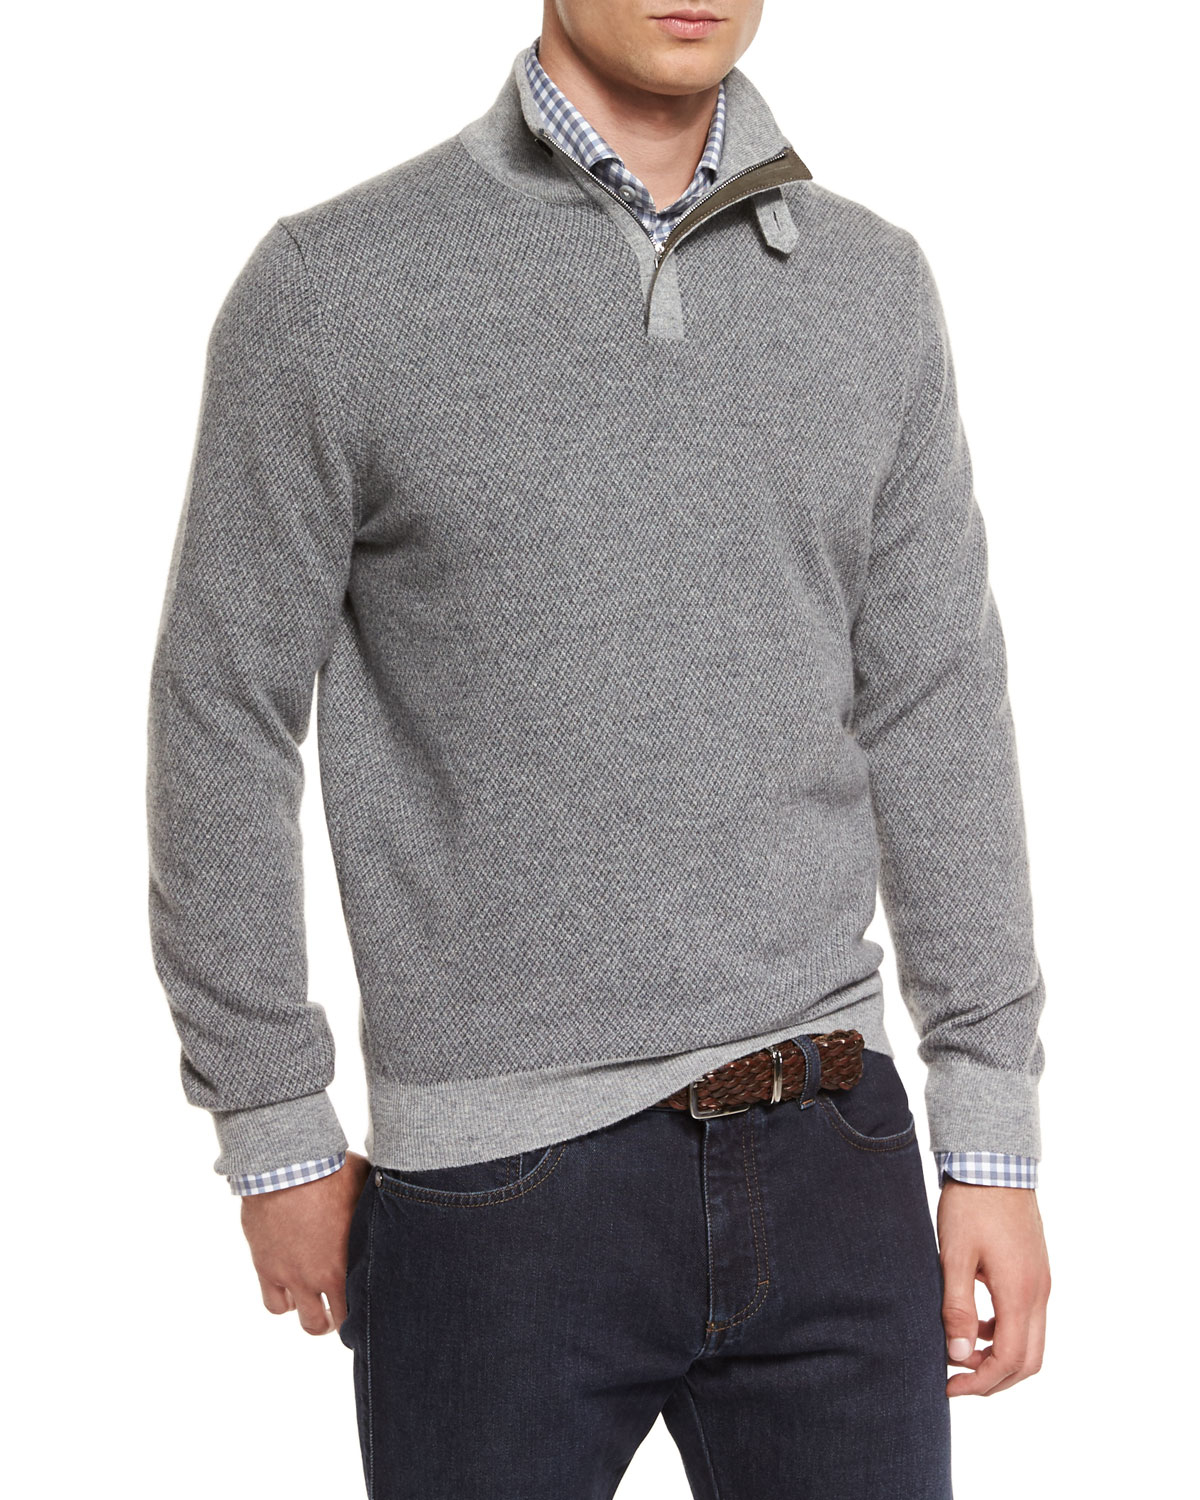 Zegna Sweater 23